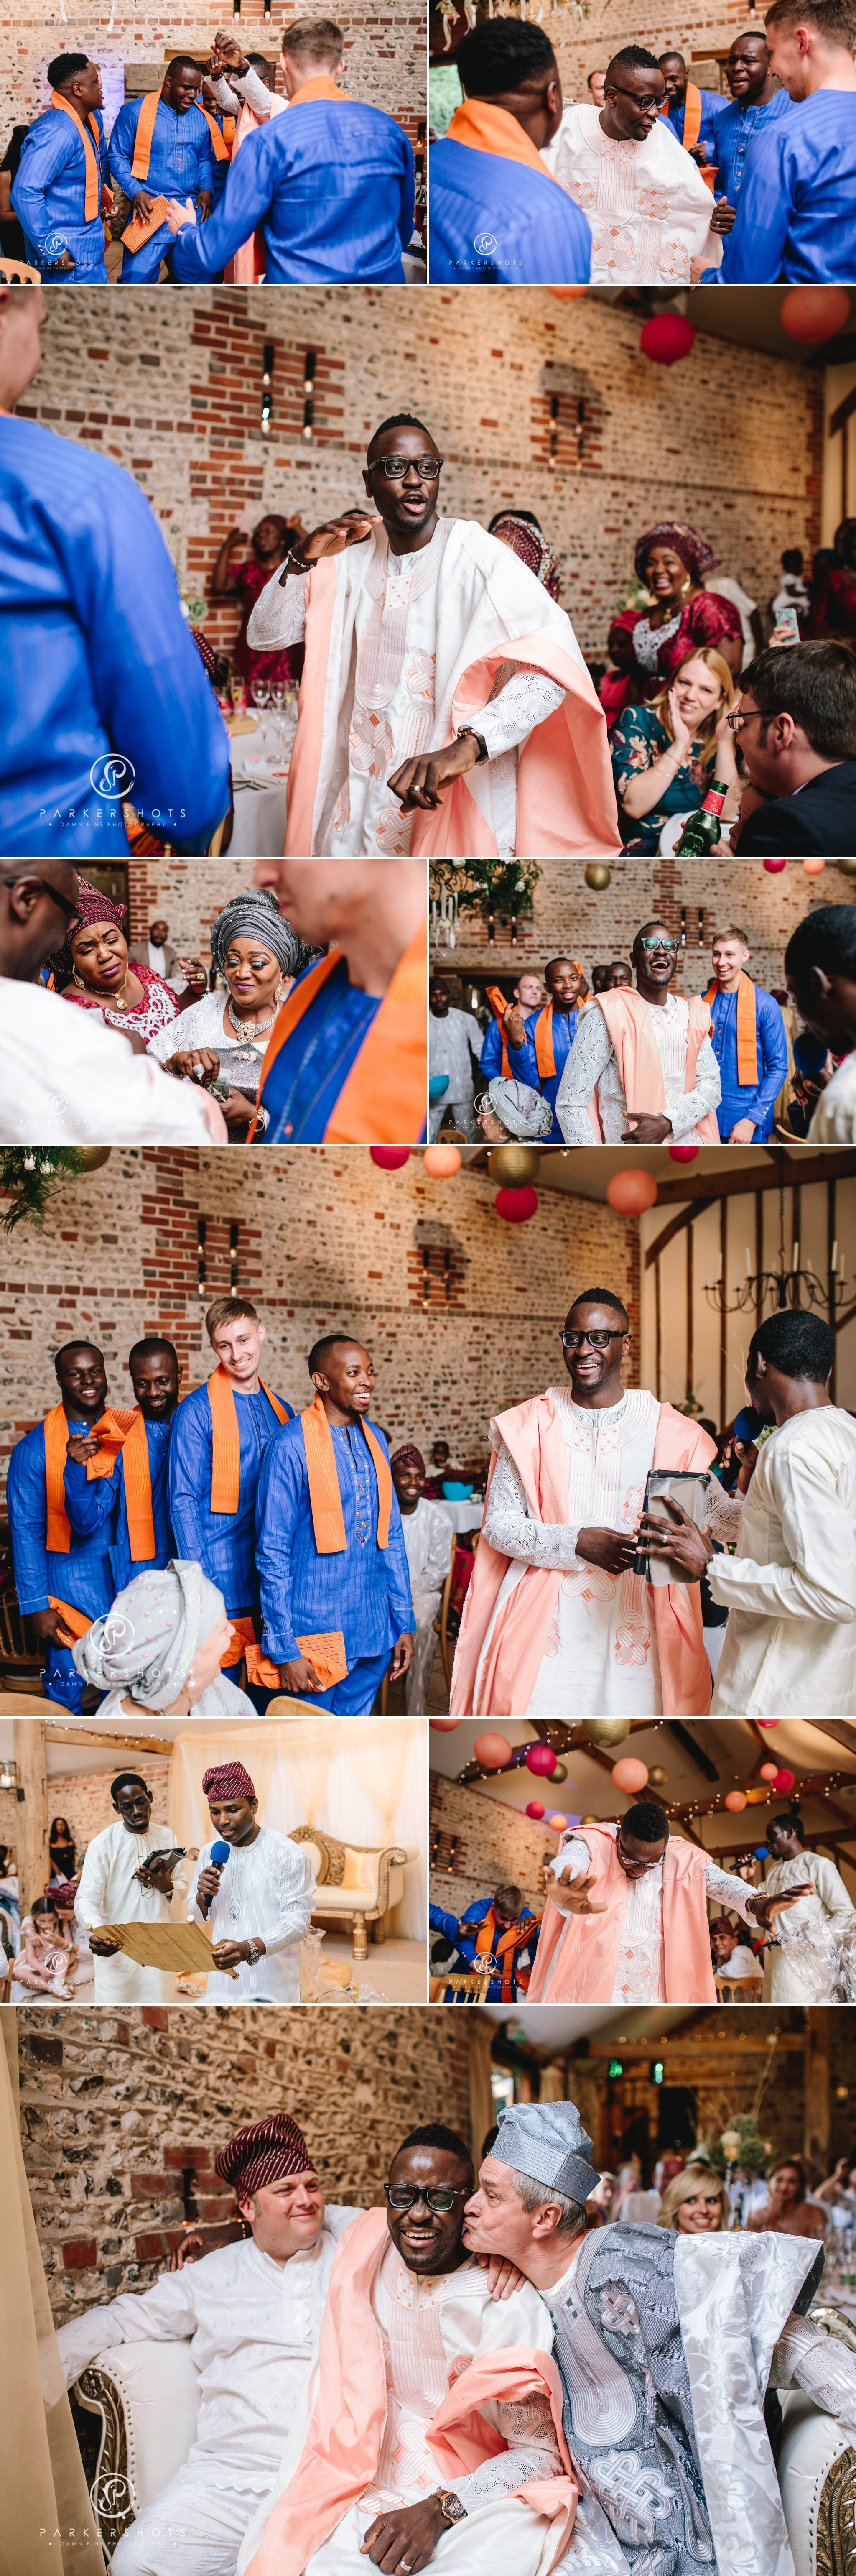 Yoruba ceremony at Upwaltham Barns